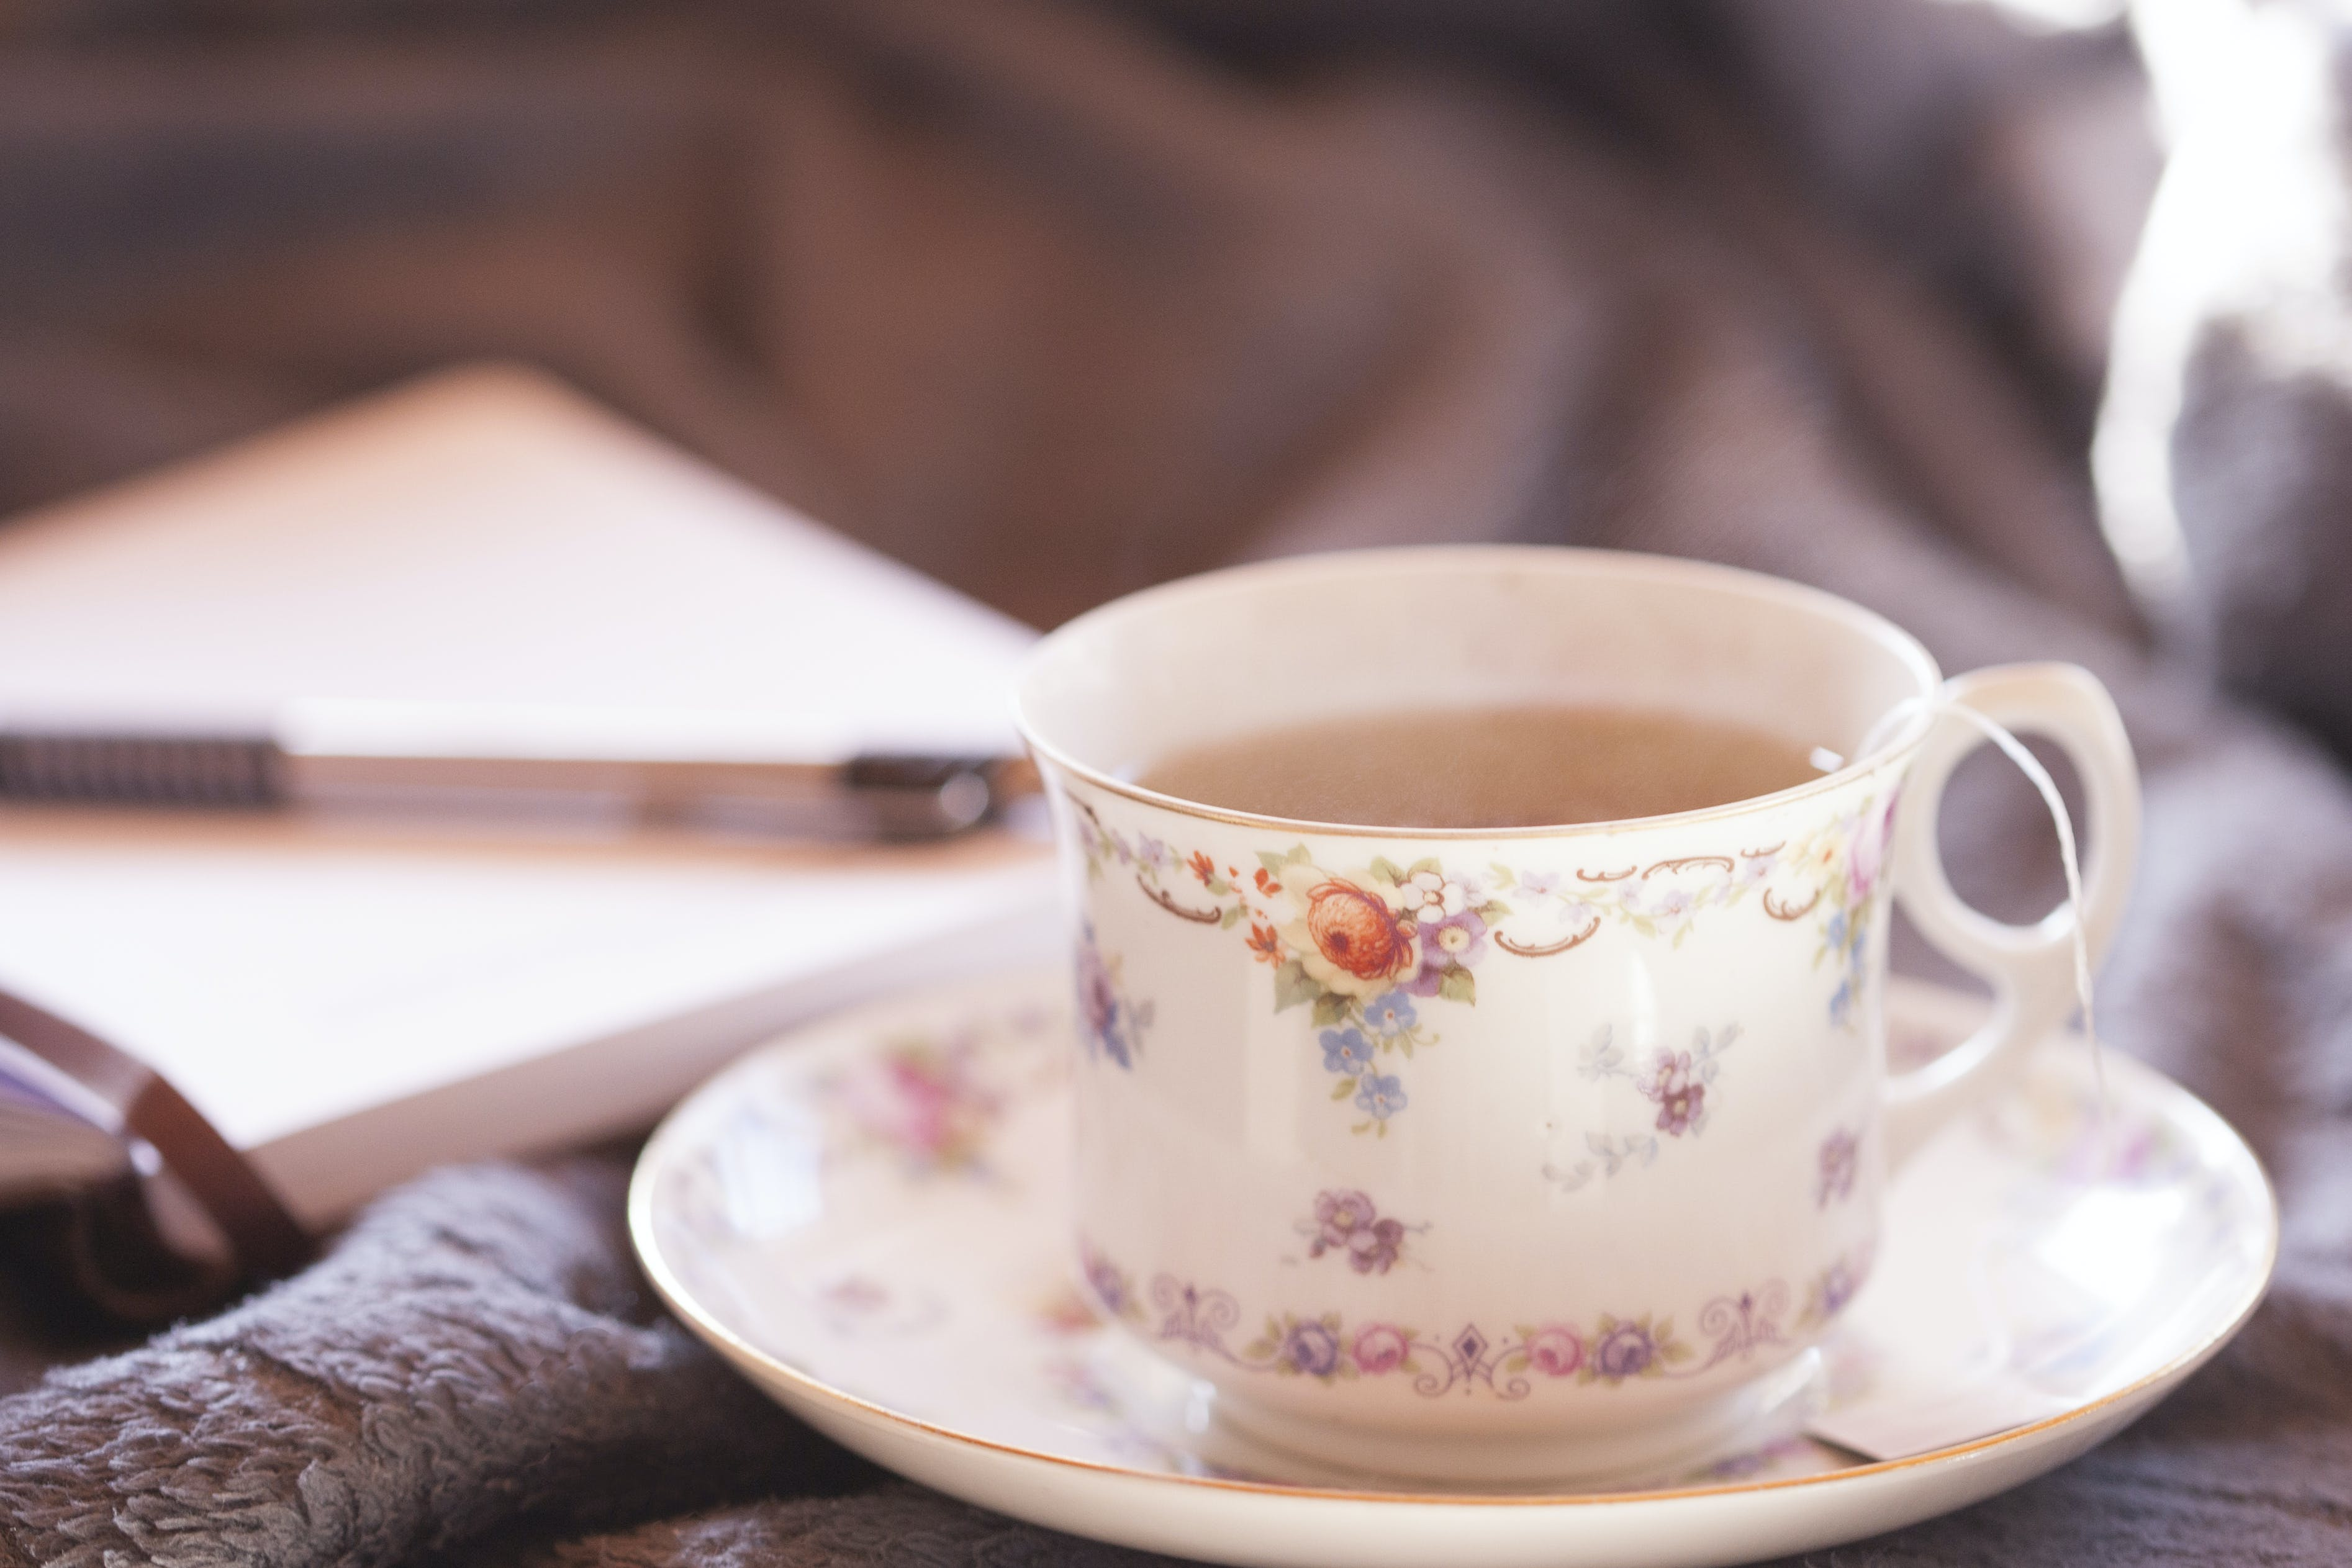 Selective-focus Photography of White and Multicolored Floral Ceramic Teacup on Saucer Filled With Coffee